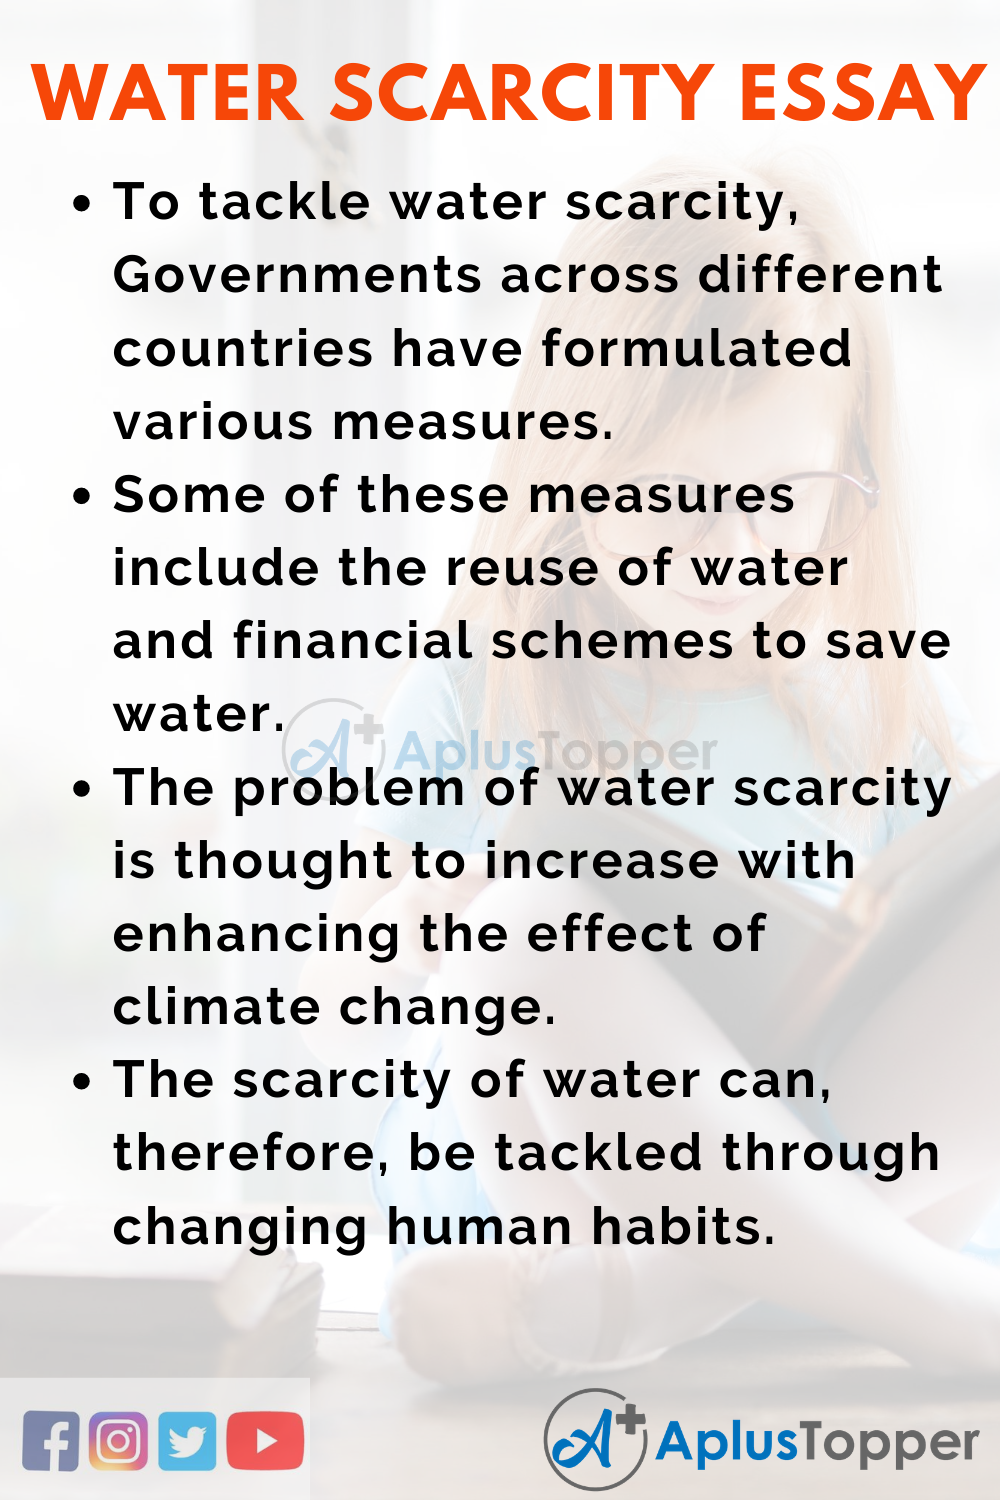 Short Essay On Water Scarcity 150 Words In English